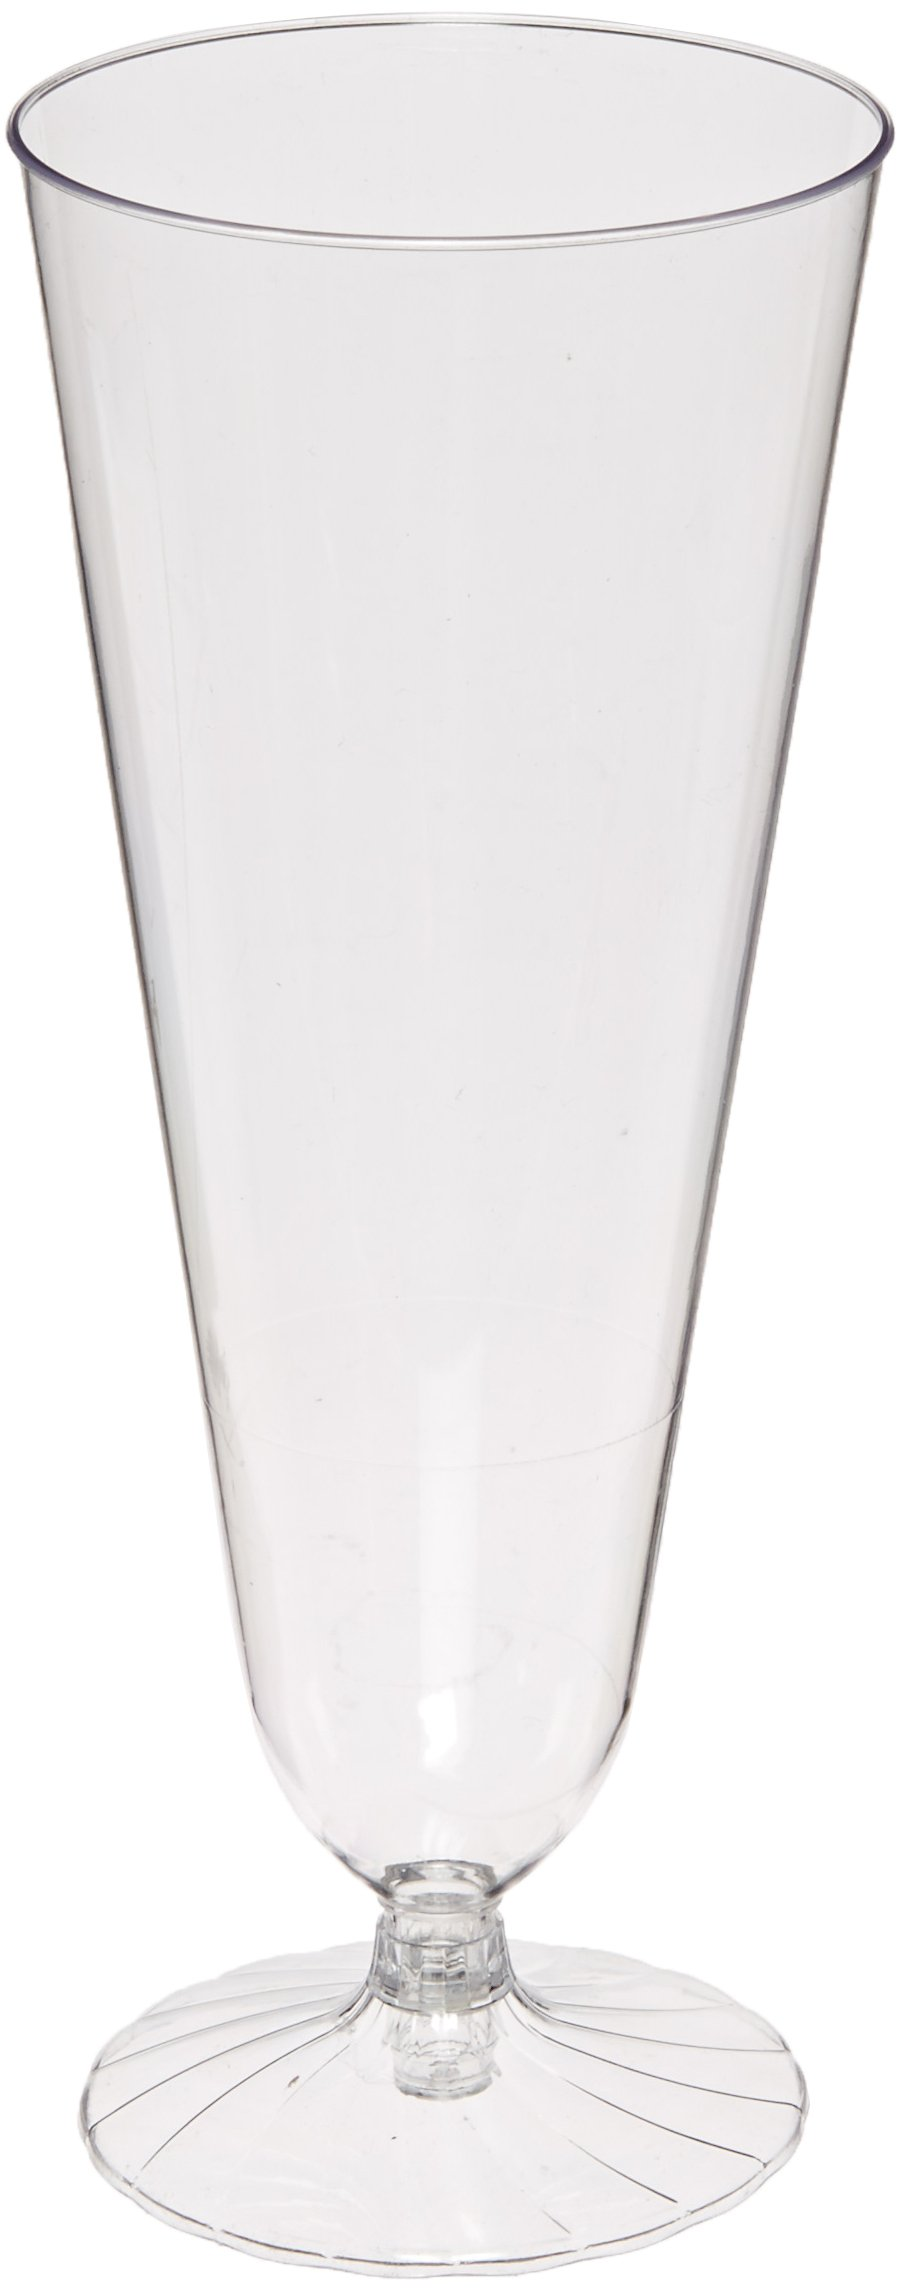 Comet 2-Piece Plastic Beer Pilsner Glass, 12-Ounce, Clear (250-Count)